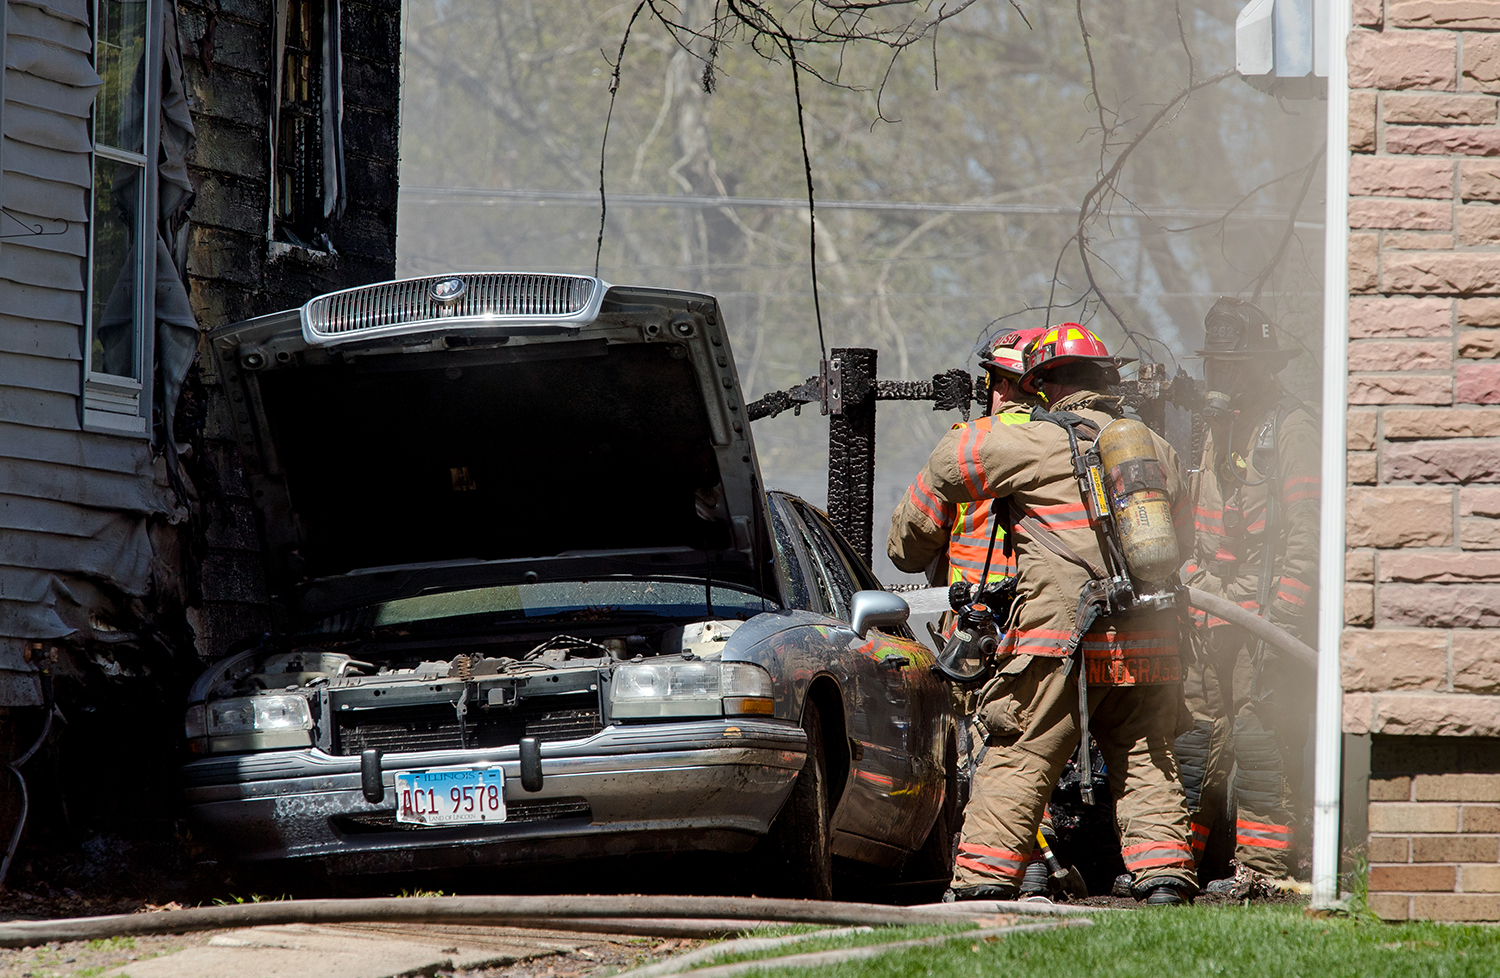 Springfield firefighters spray water into a car at 1023 Bryn Mawr Blvd. Sunday, April 21, 2019. The fire spread to the houses on both sides of the car. [Ted Schurter/The State Journal-Register]